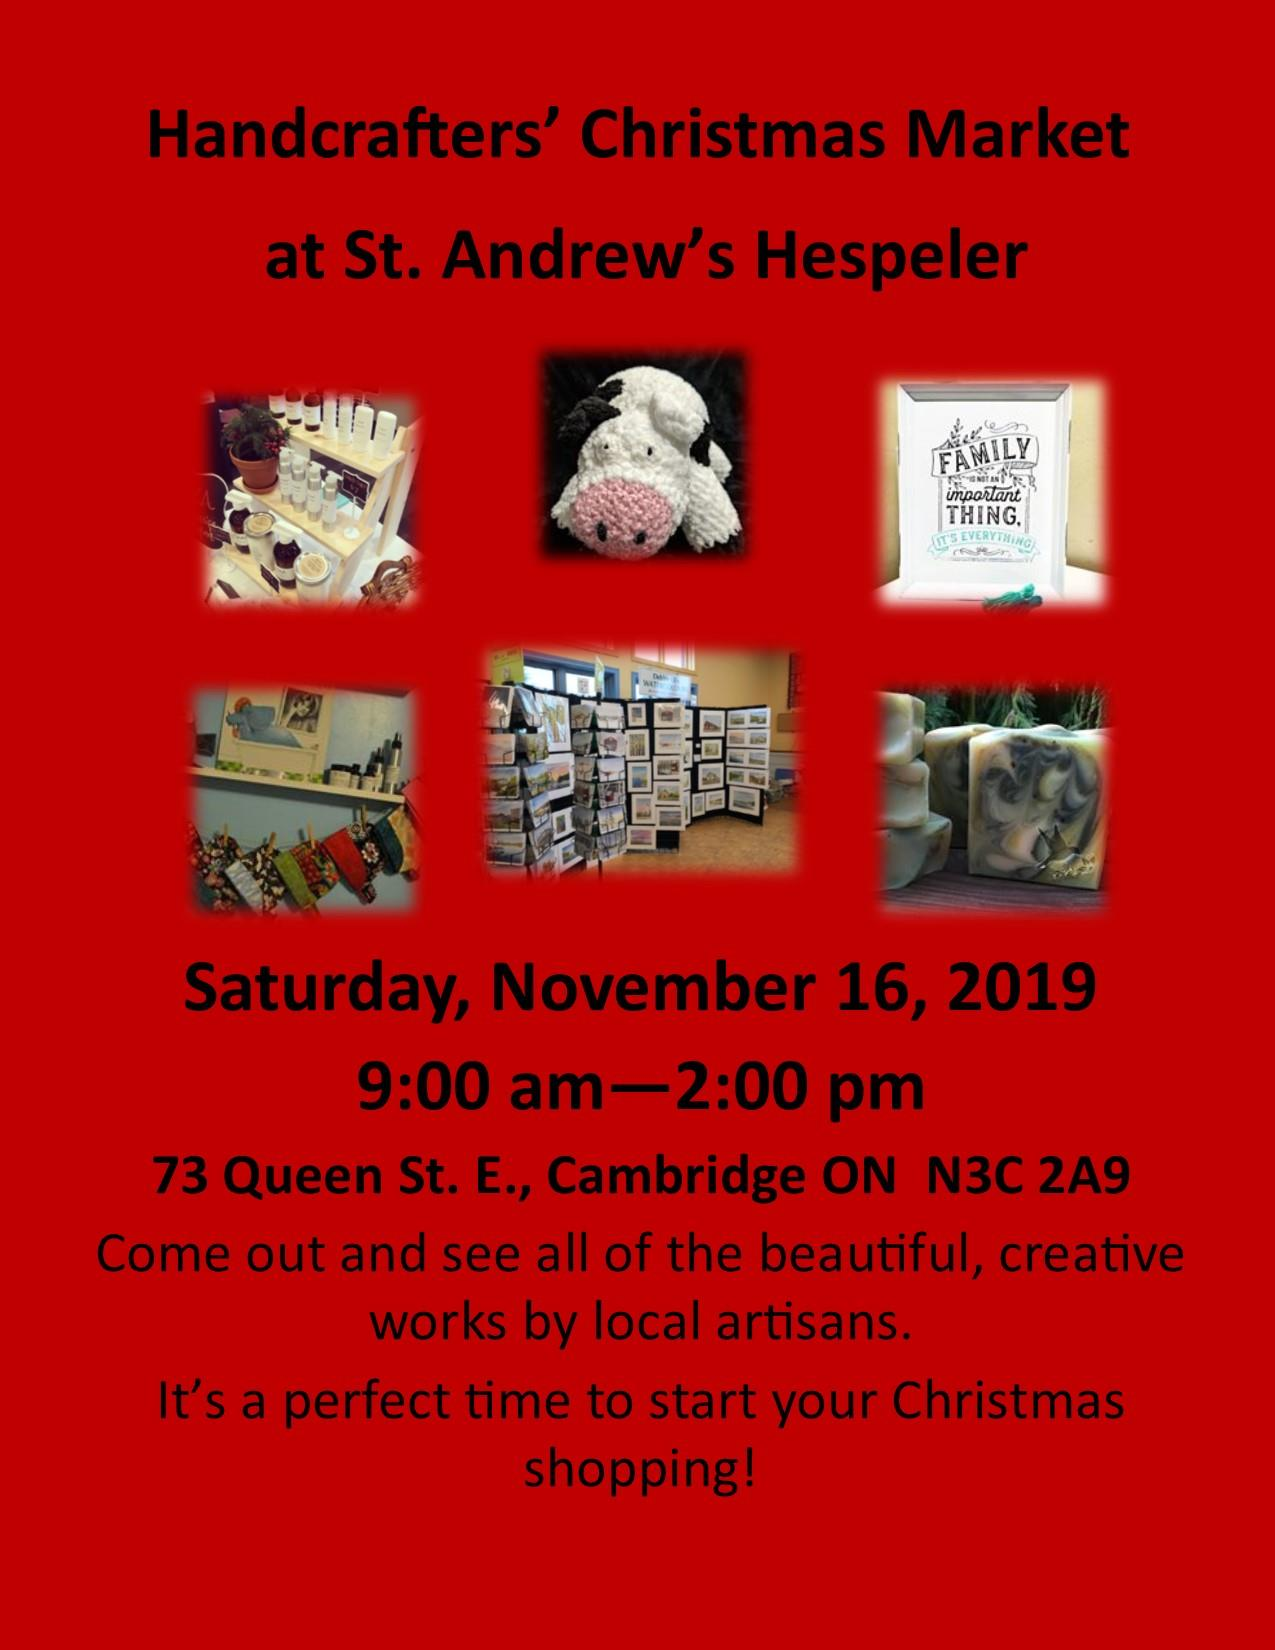 Red poster with pictures of various crafts for purchase as St. Andrew's Hespeler Craft Show